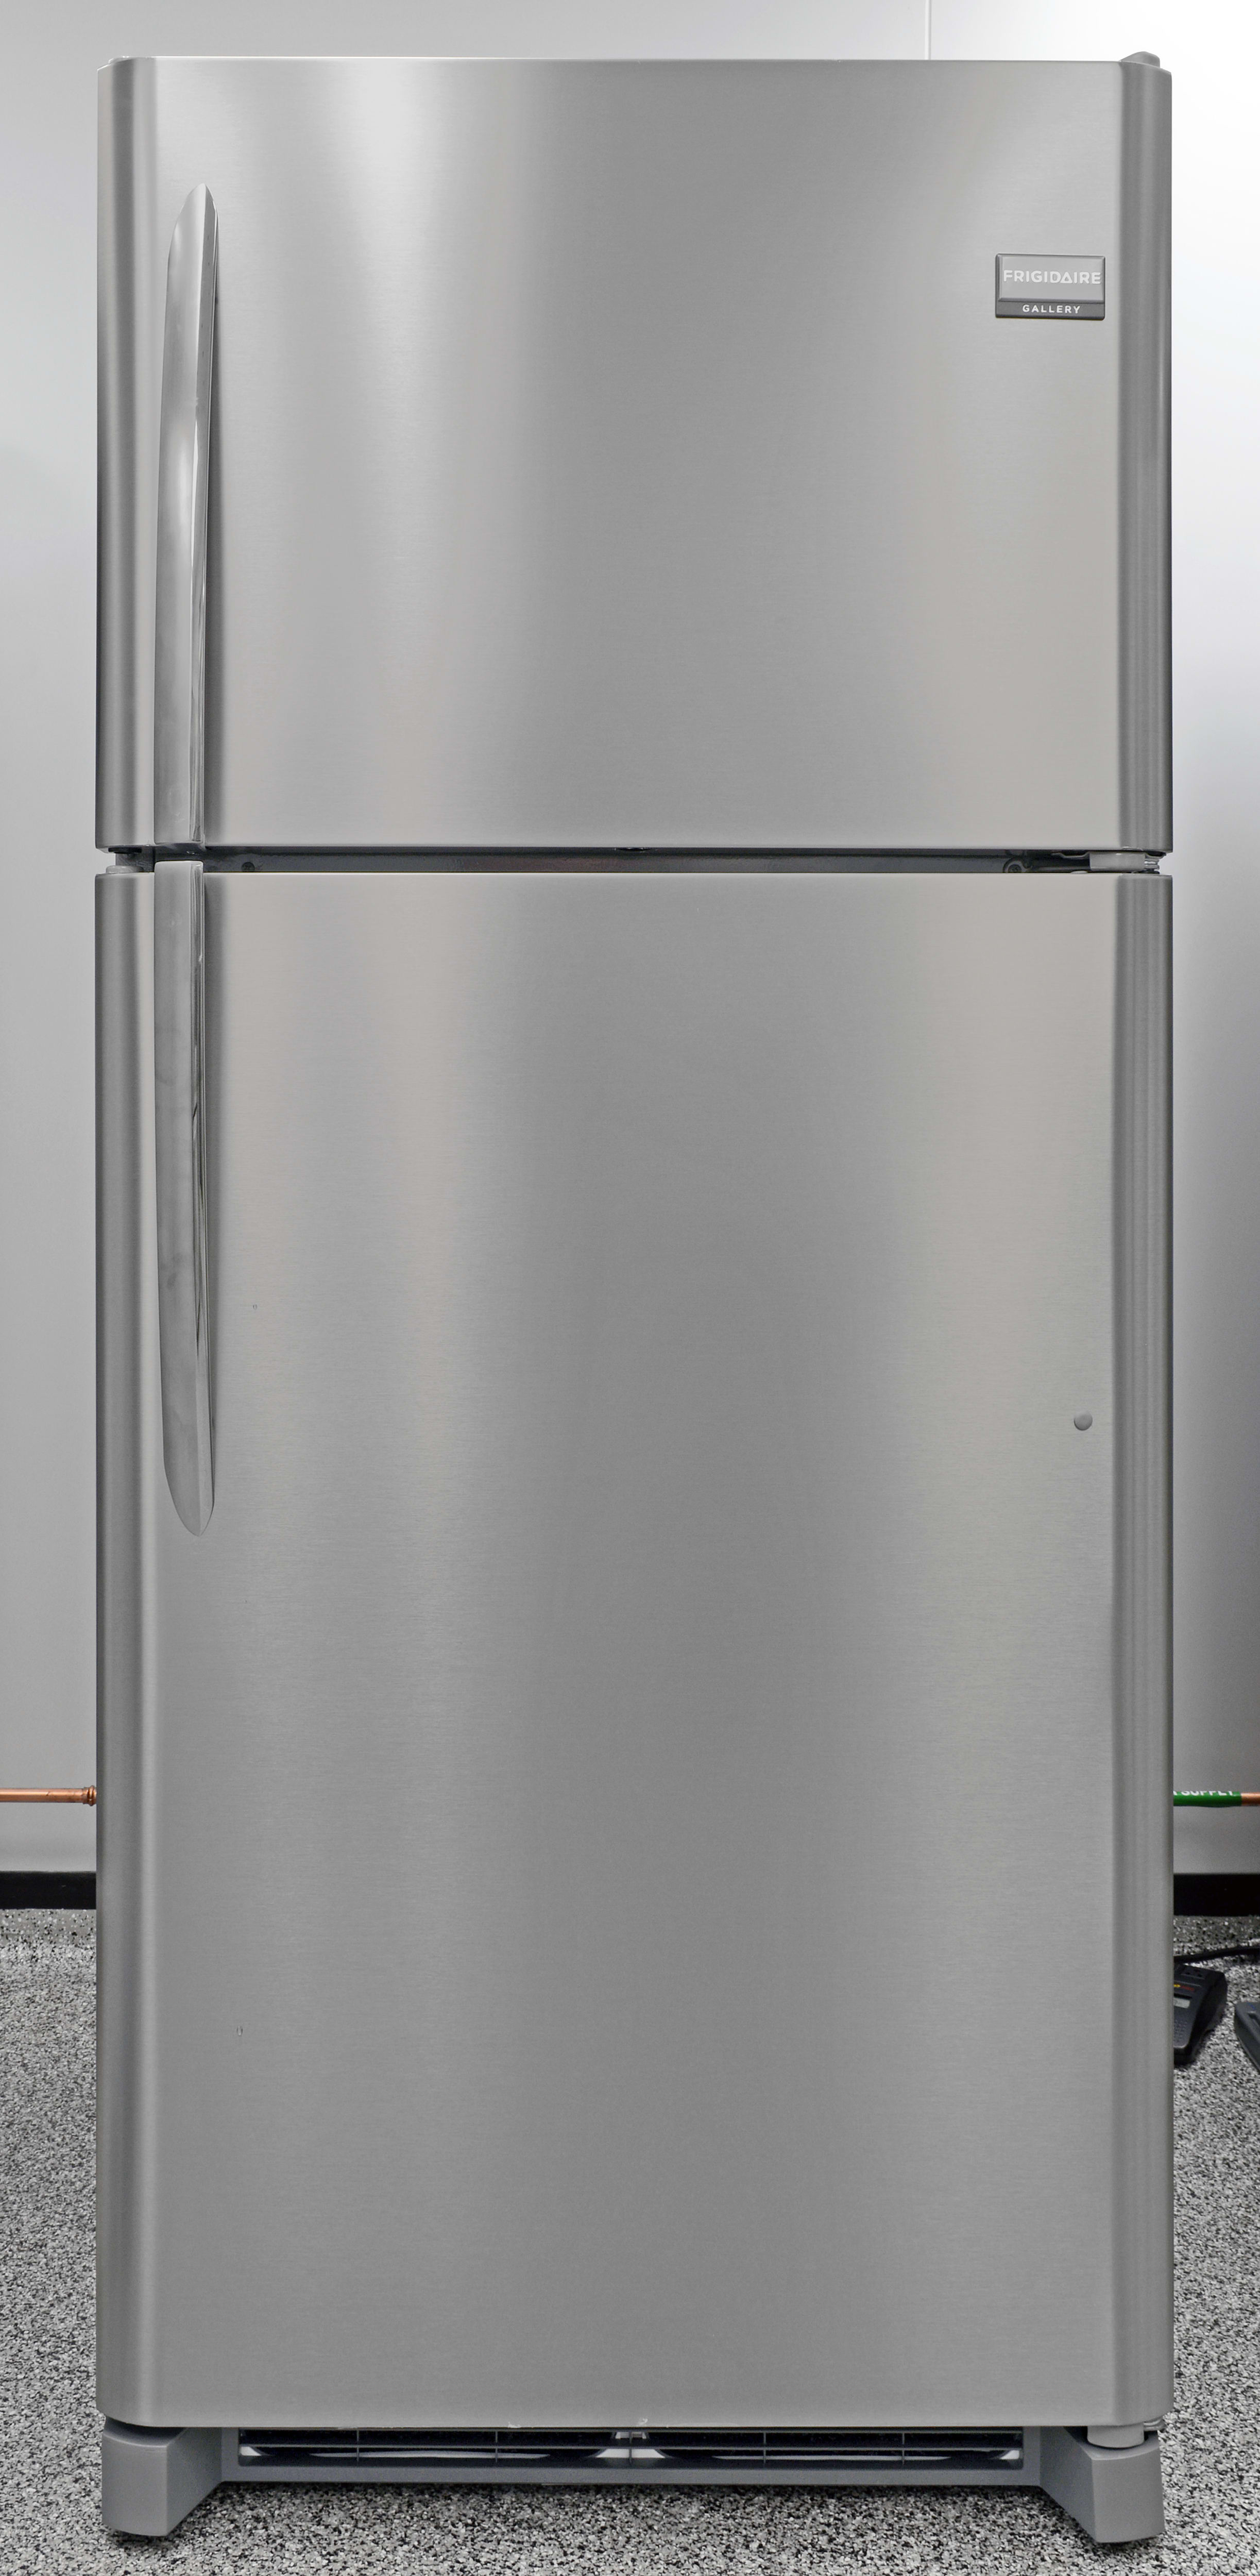 The Frigidaire Gallery FGTR1845QF is a great stainless top freezer for an affordable price.